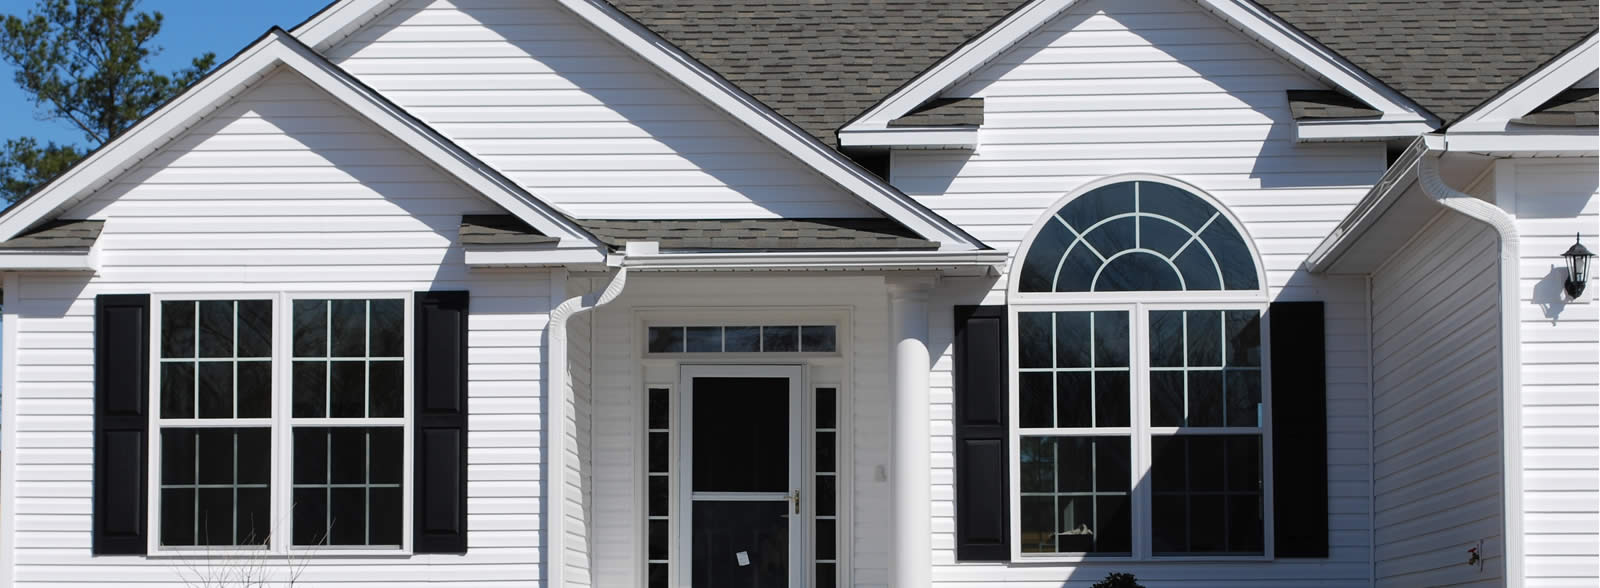 Vinyl Siding In Reynoldsburg Oh Roofing And Exteriors